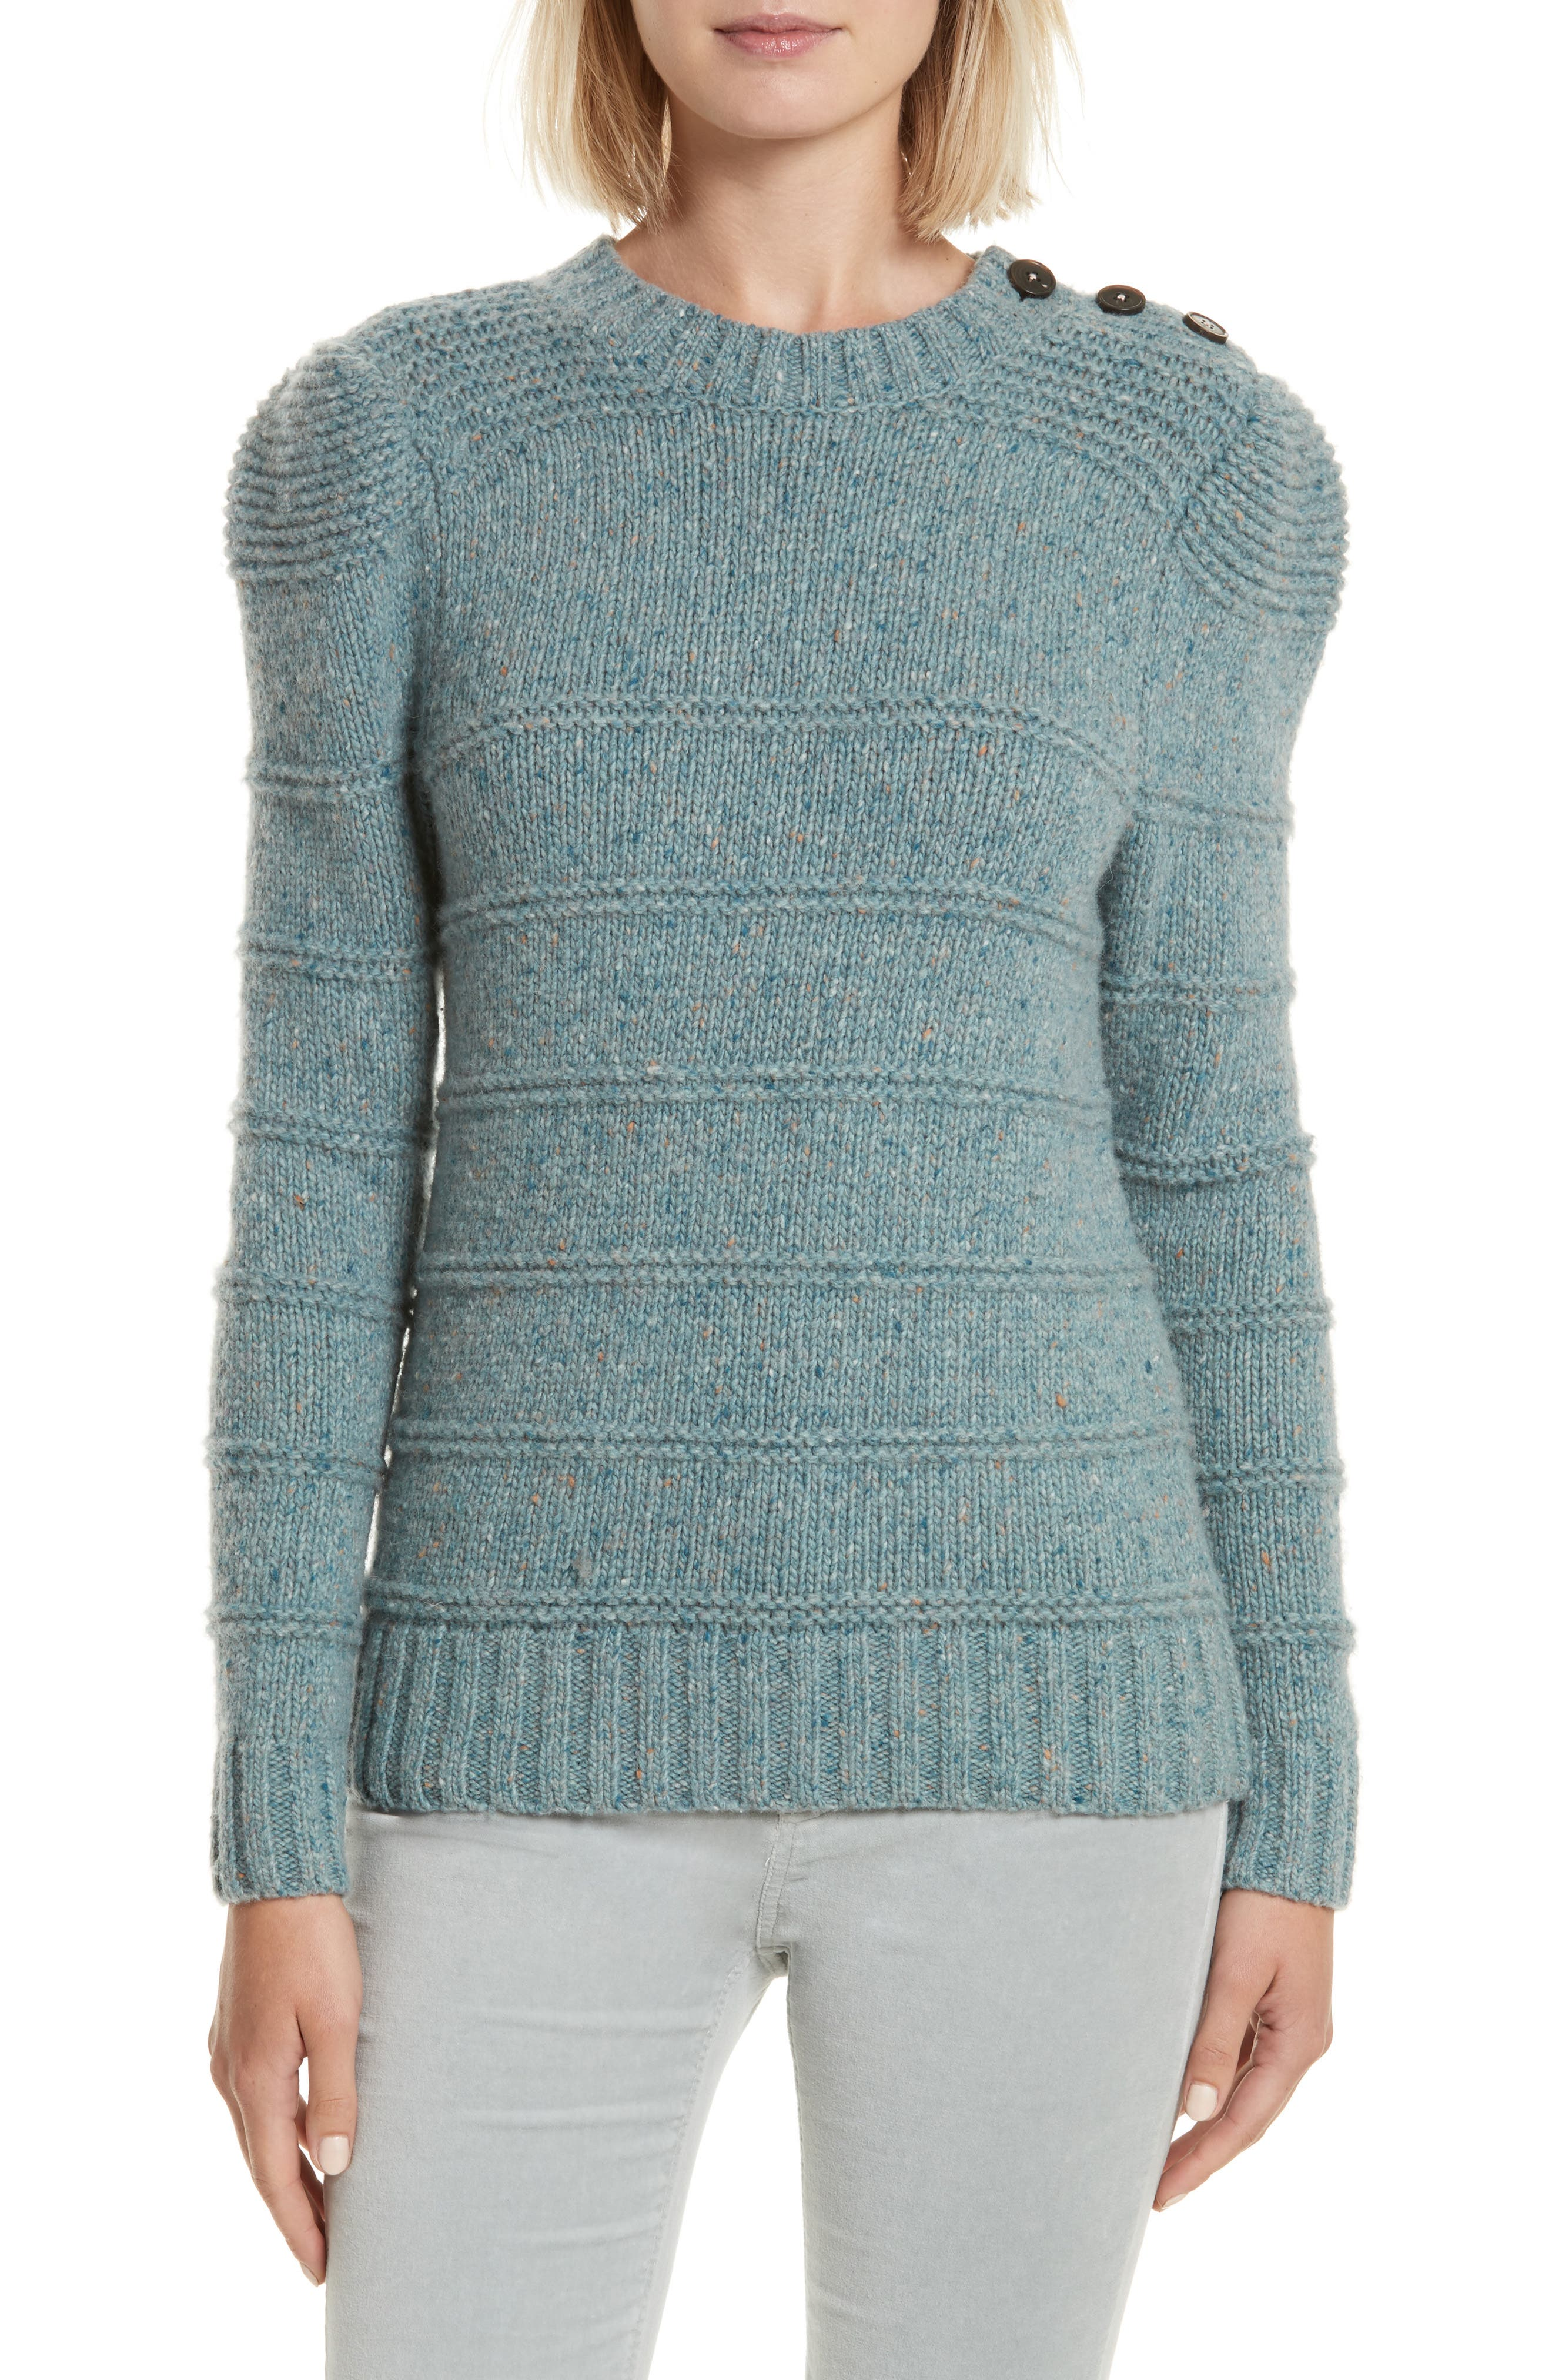 Donegal Tweed Pullover,                             Main thumbnail 1, color,                             Sea Mist